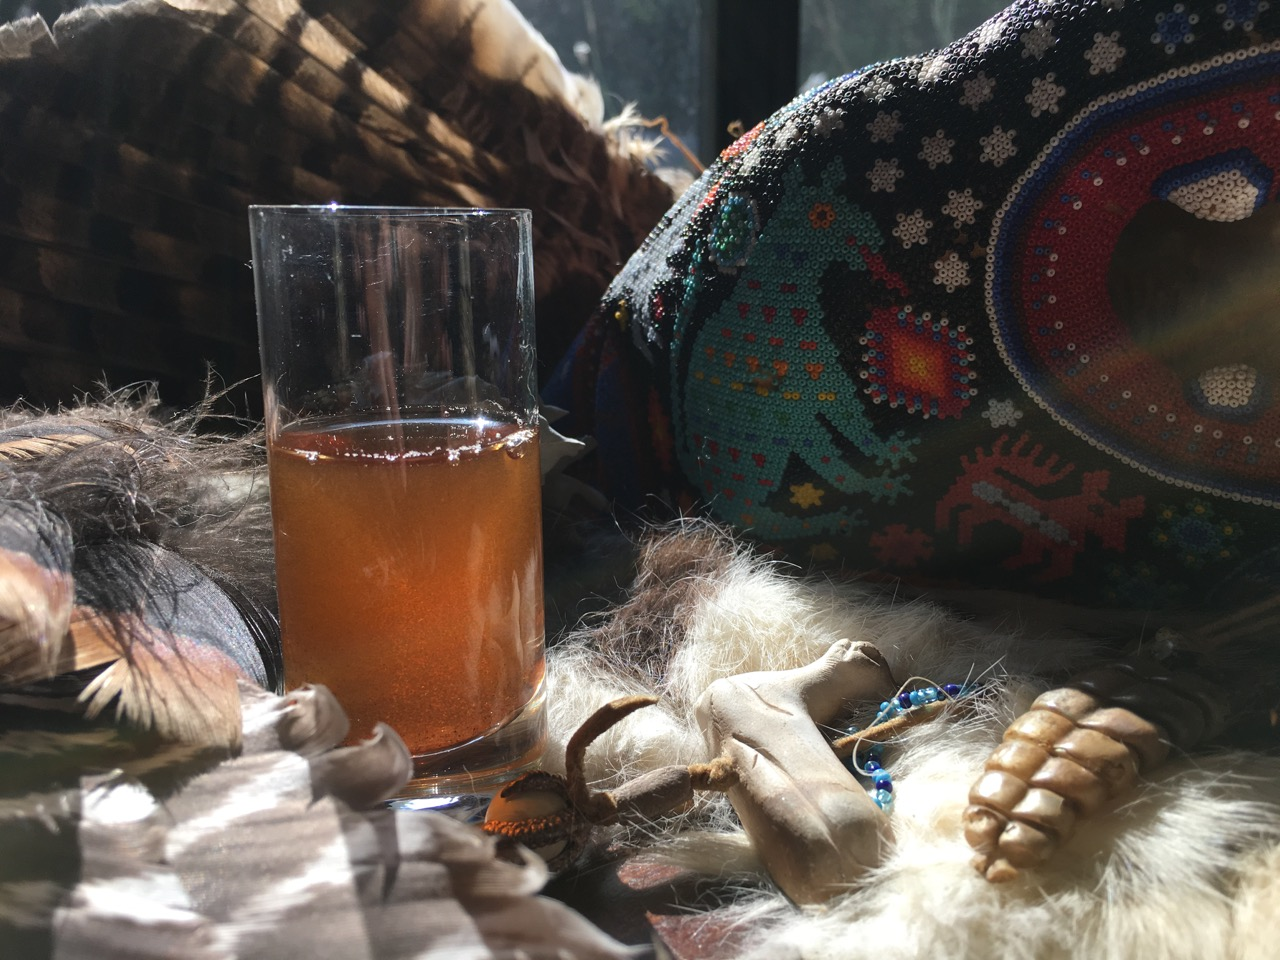 Sham-Shamans, Ayahuasca and the Desire for Power. Is your Shaman sketchy?